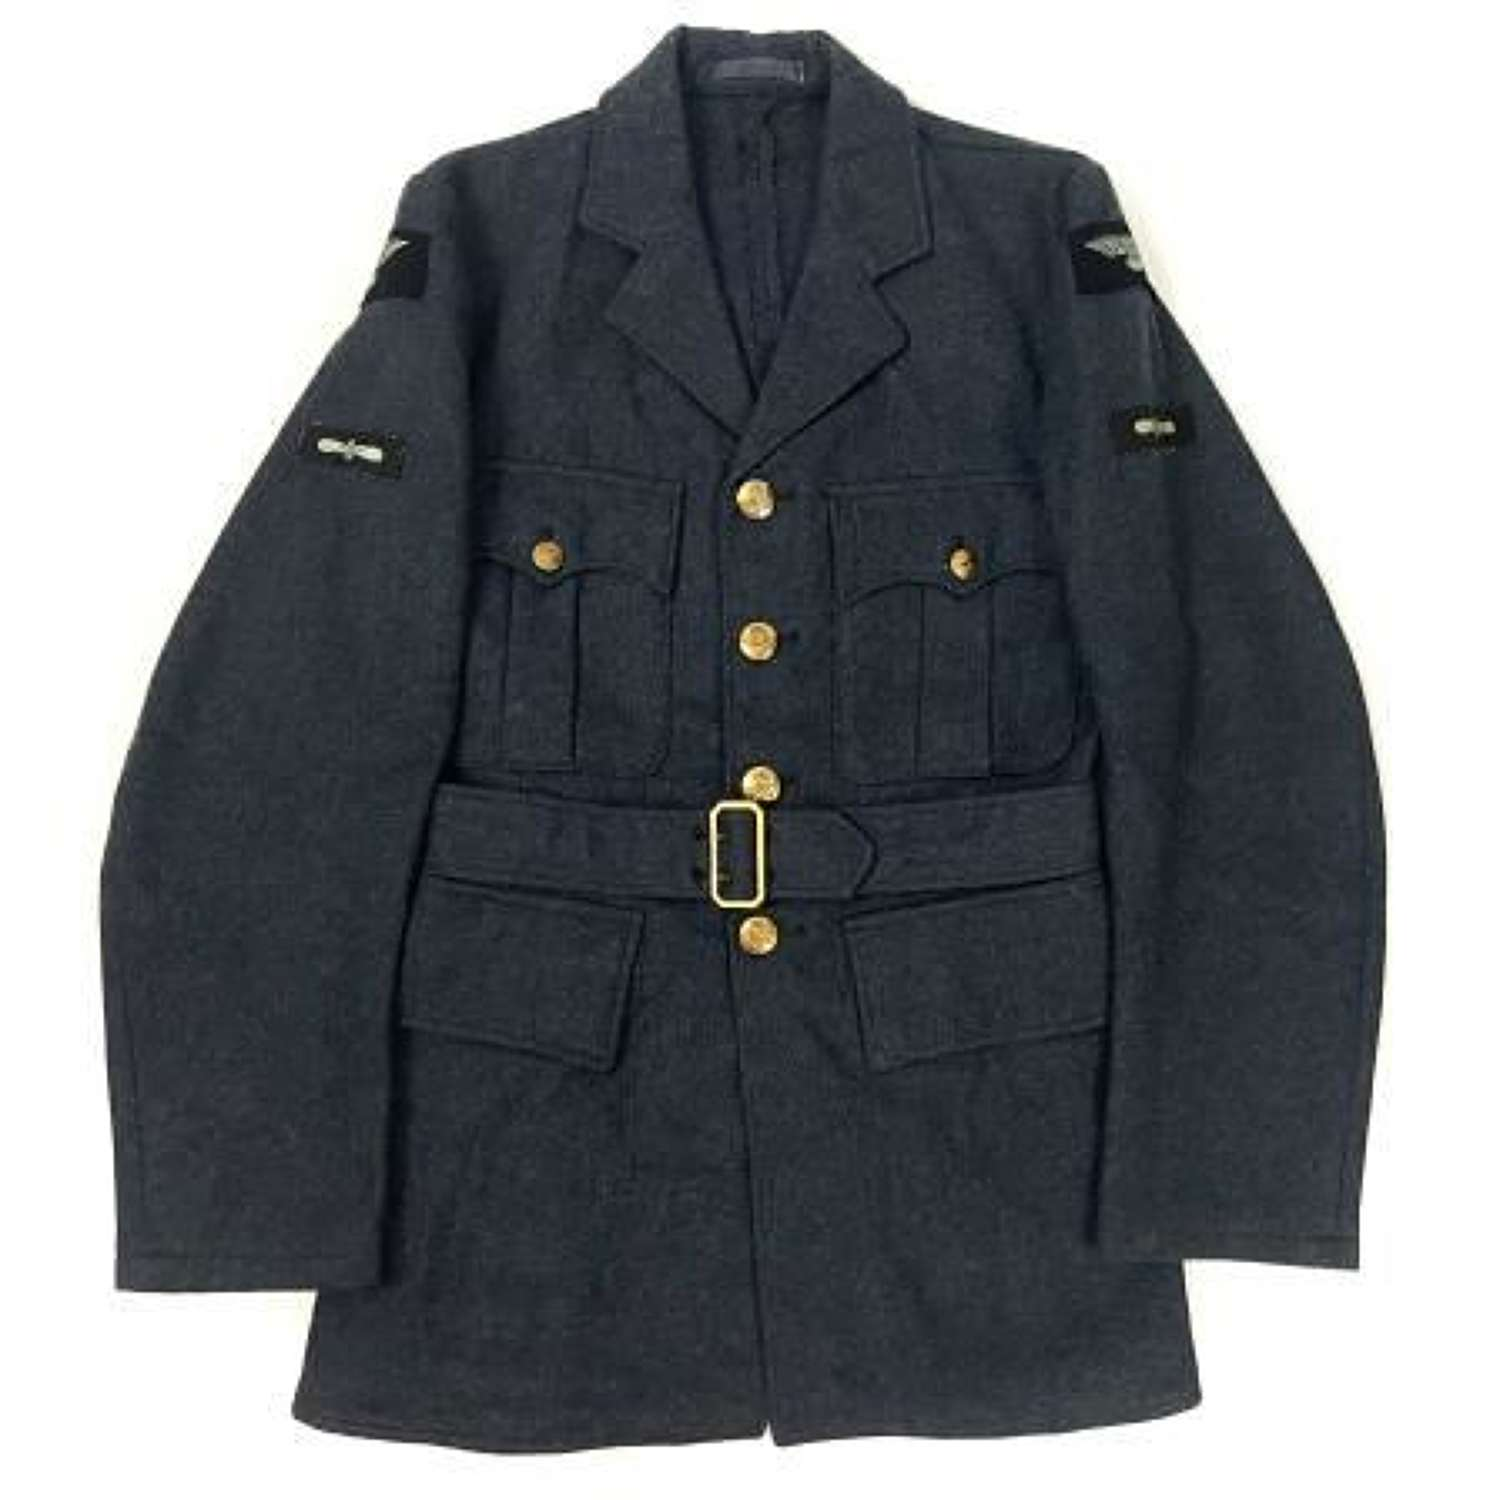 Original 1948 Dated RAF Ordinary Airman's Tunic